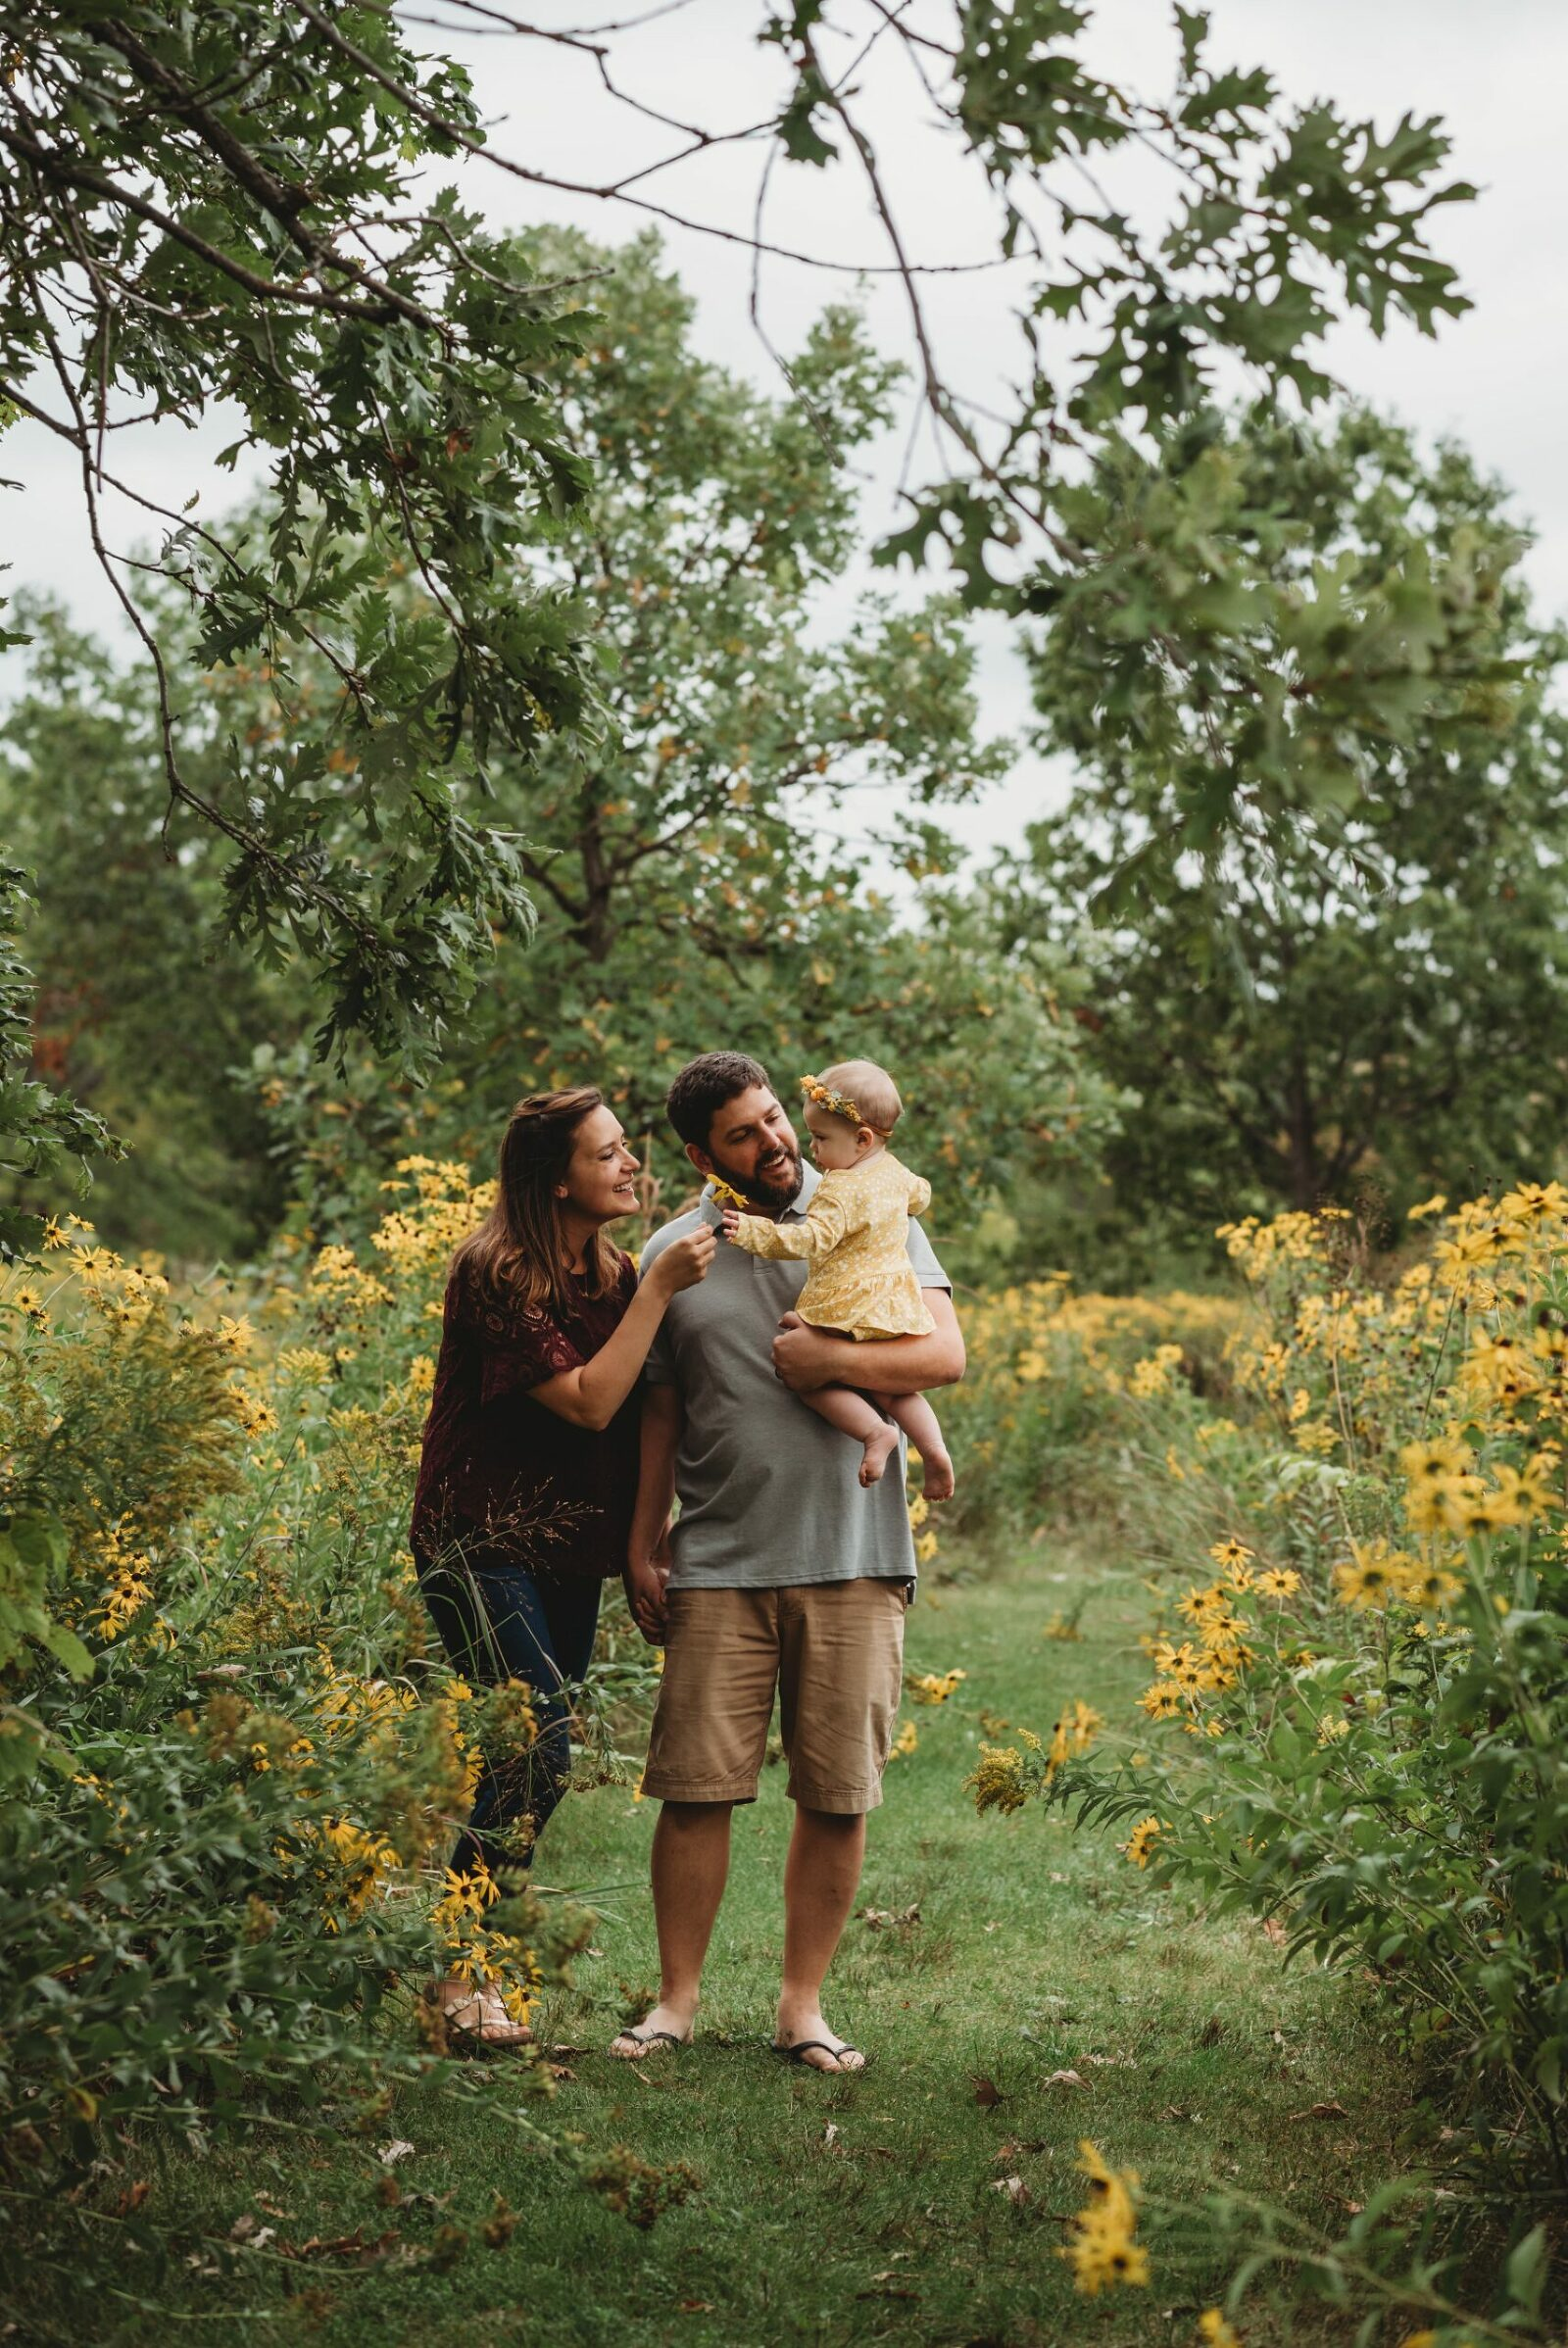 young family walking through a field of yellow flowers